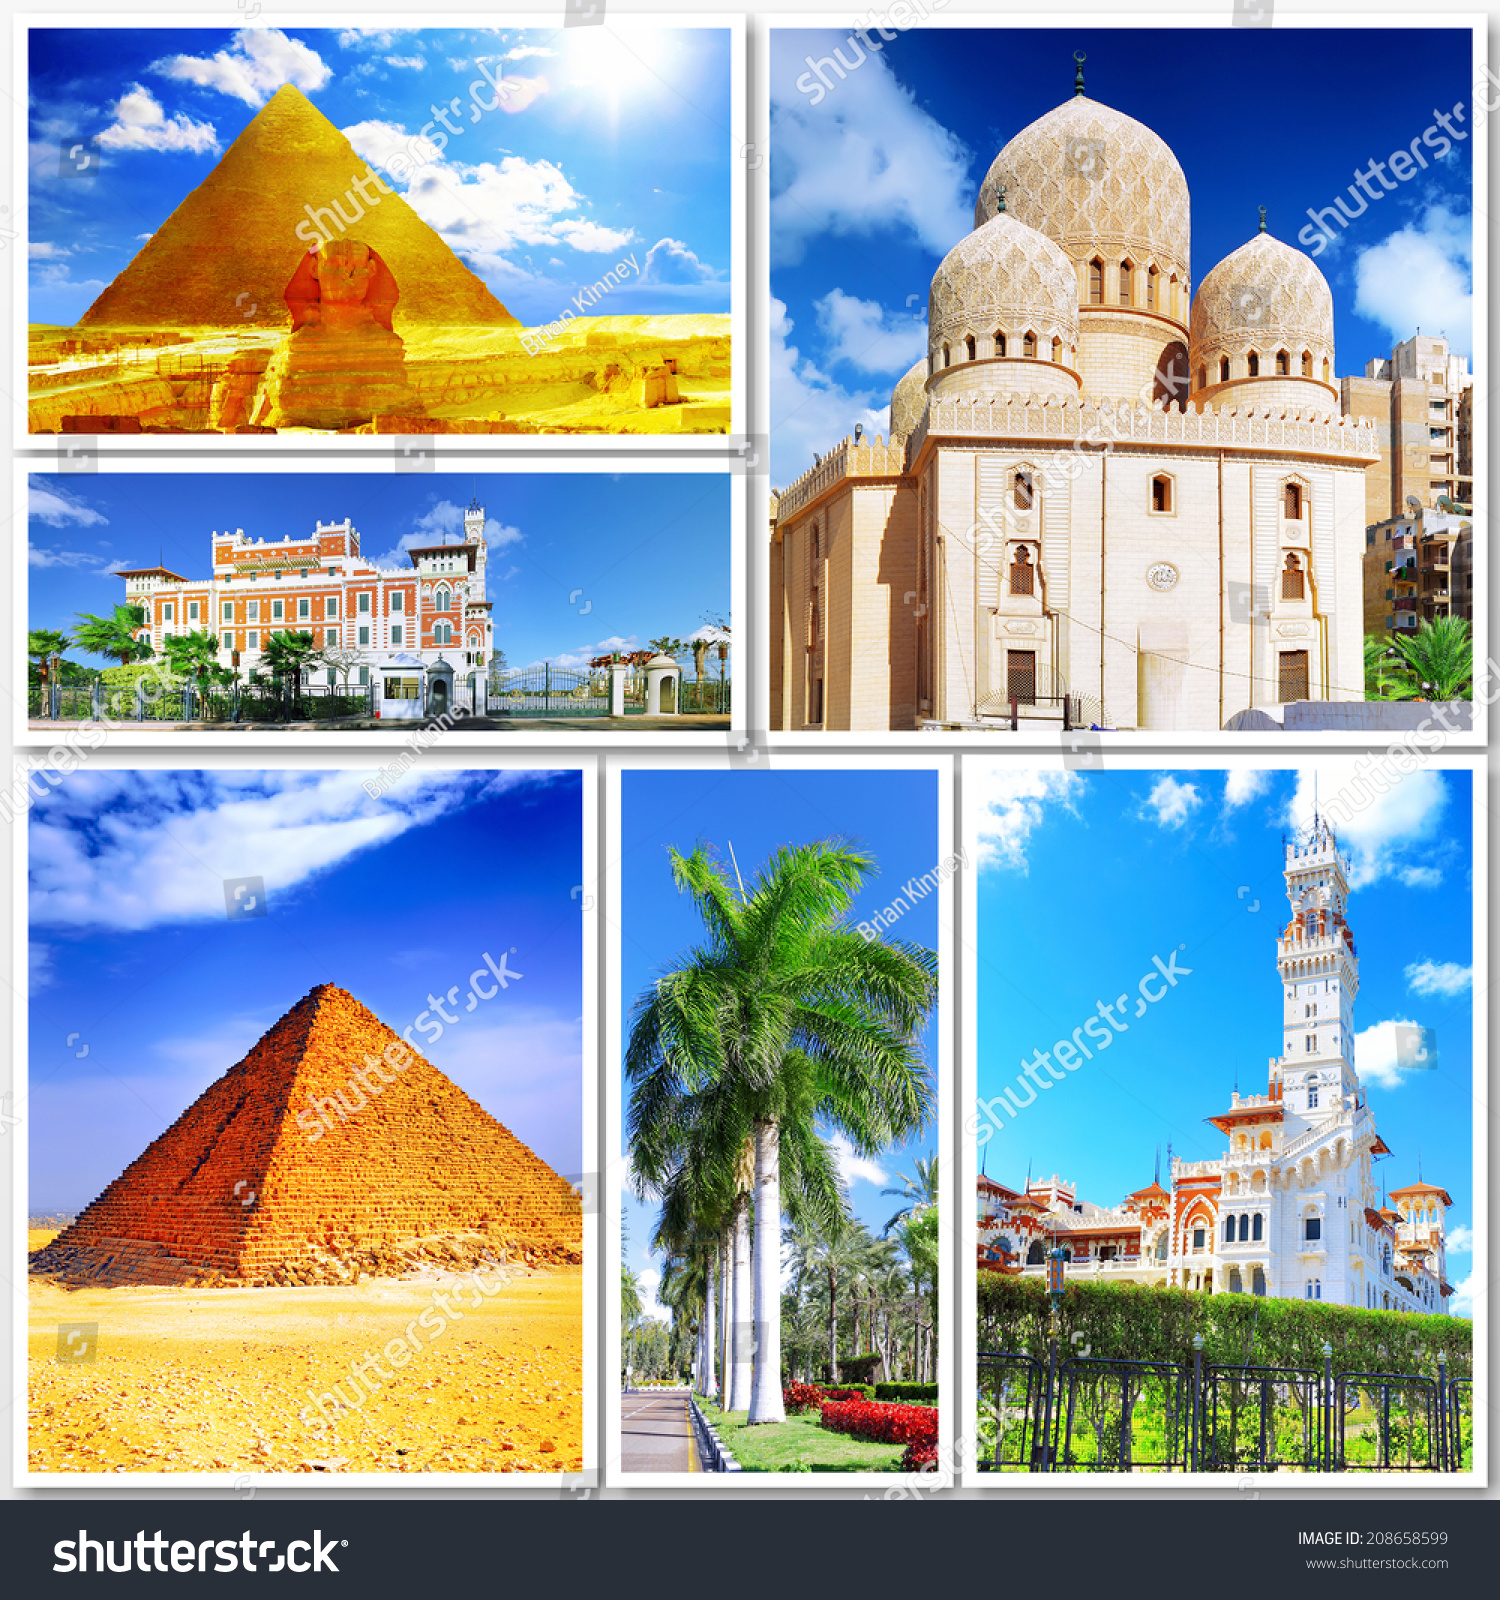 Collage Beautiful Egypt Africa Stock Photo Shutterstock - Is egypt in africa